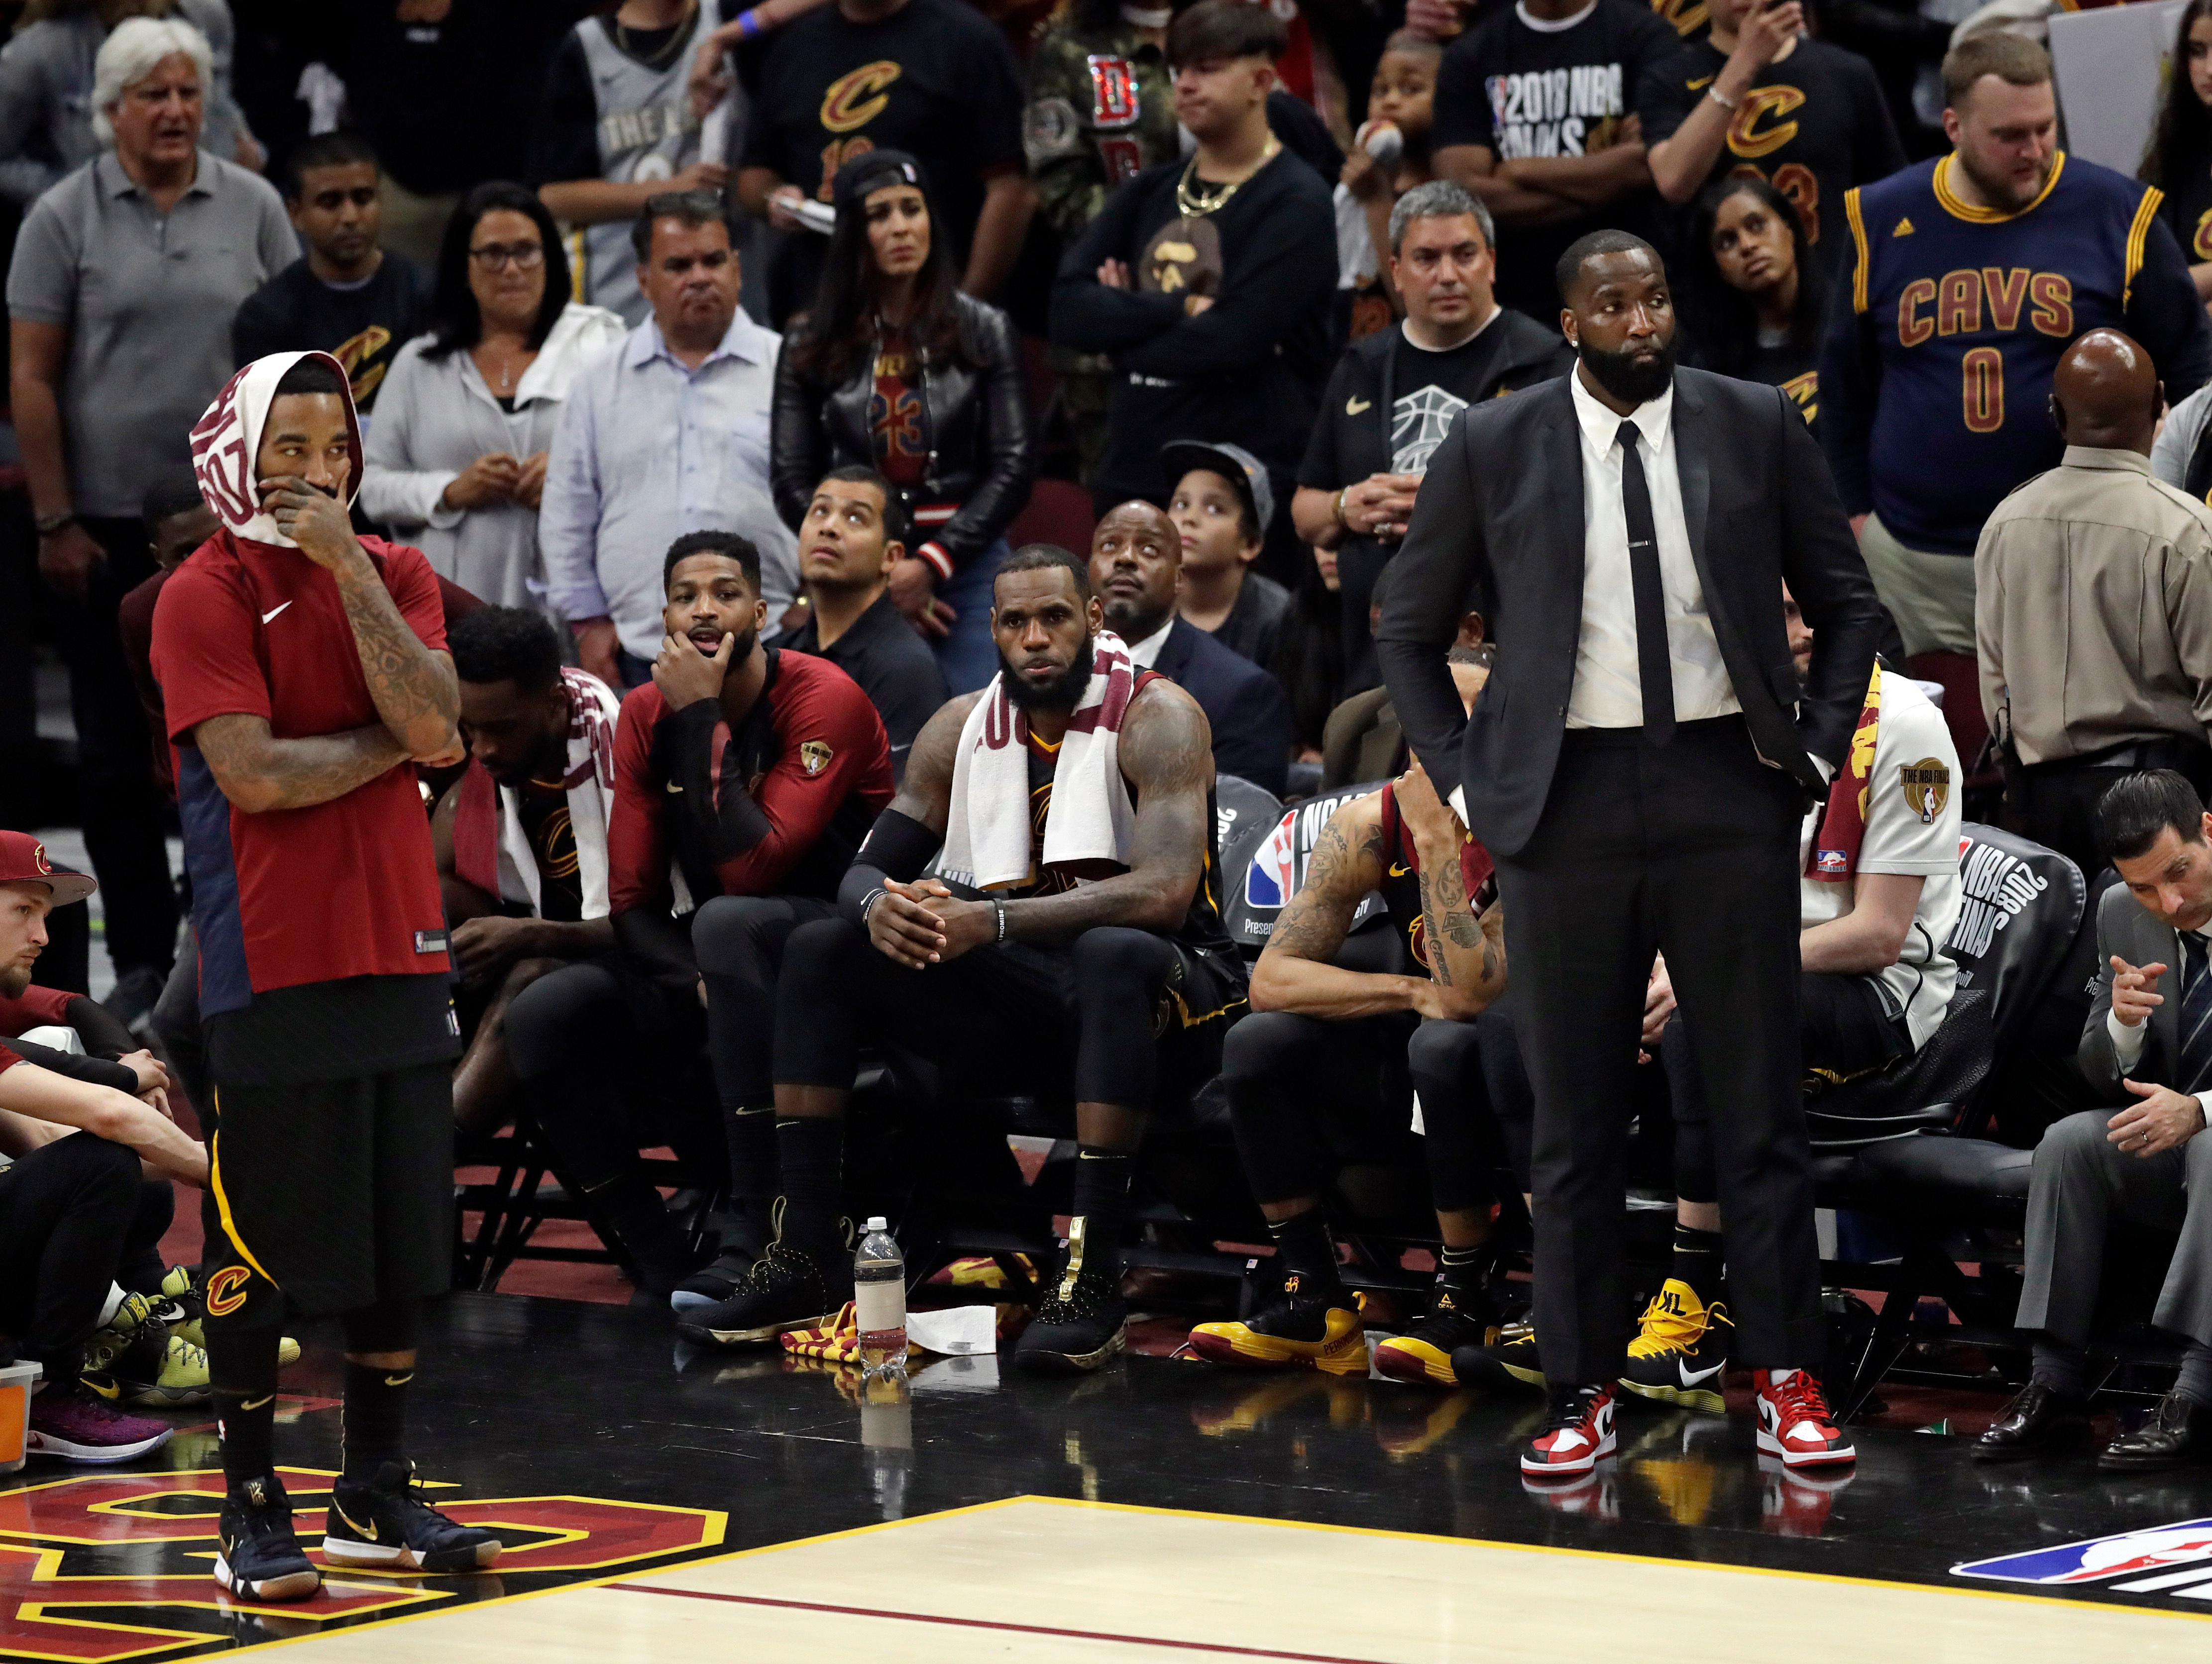 The Cleveland Cavaliers watch late in the second half of Game 4 of basketball's NBA Finals against the Golden State Warriors, Friday, June 8, 2018, in Cleveland. The Warriors defeated the Cavaliers 108-85. (AP Photo/Tony Dejak)